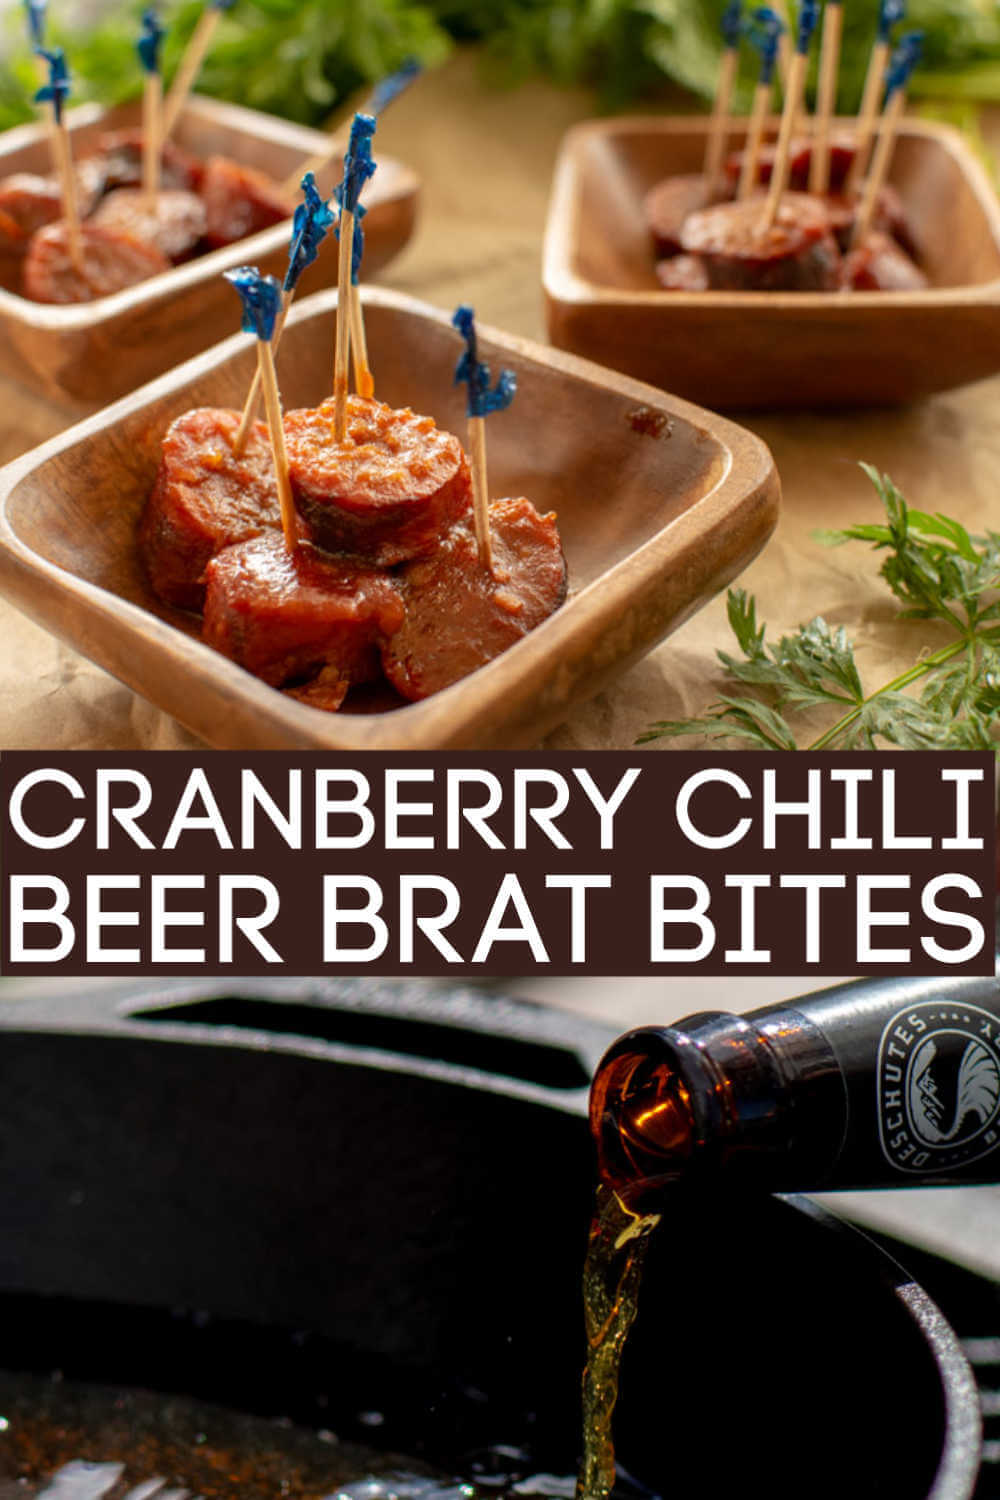 Slow Cooker Grilled Cranberry Chili Beer Brat Bites are a perfect finger food for a fun twist on a classic dish. Two slow cooker ingredients and a delicious dish! #Beer #BeerBrats #ChiliSauce #CranberrySauce #FingerFood